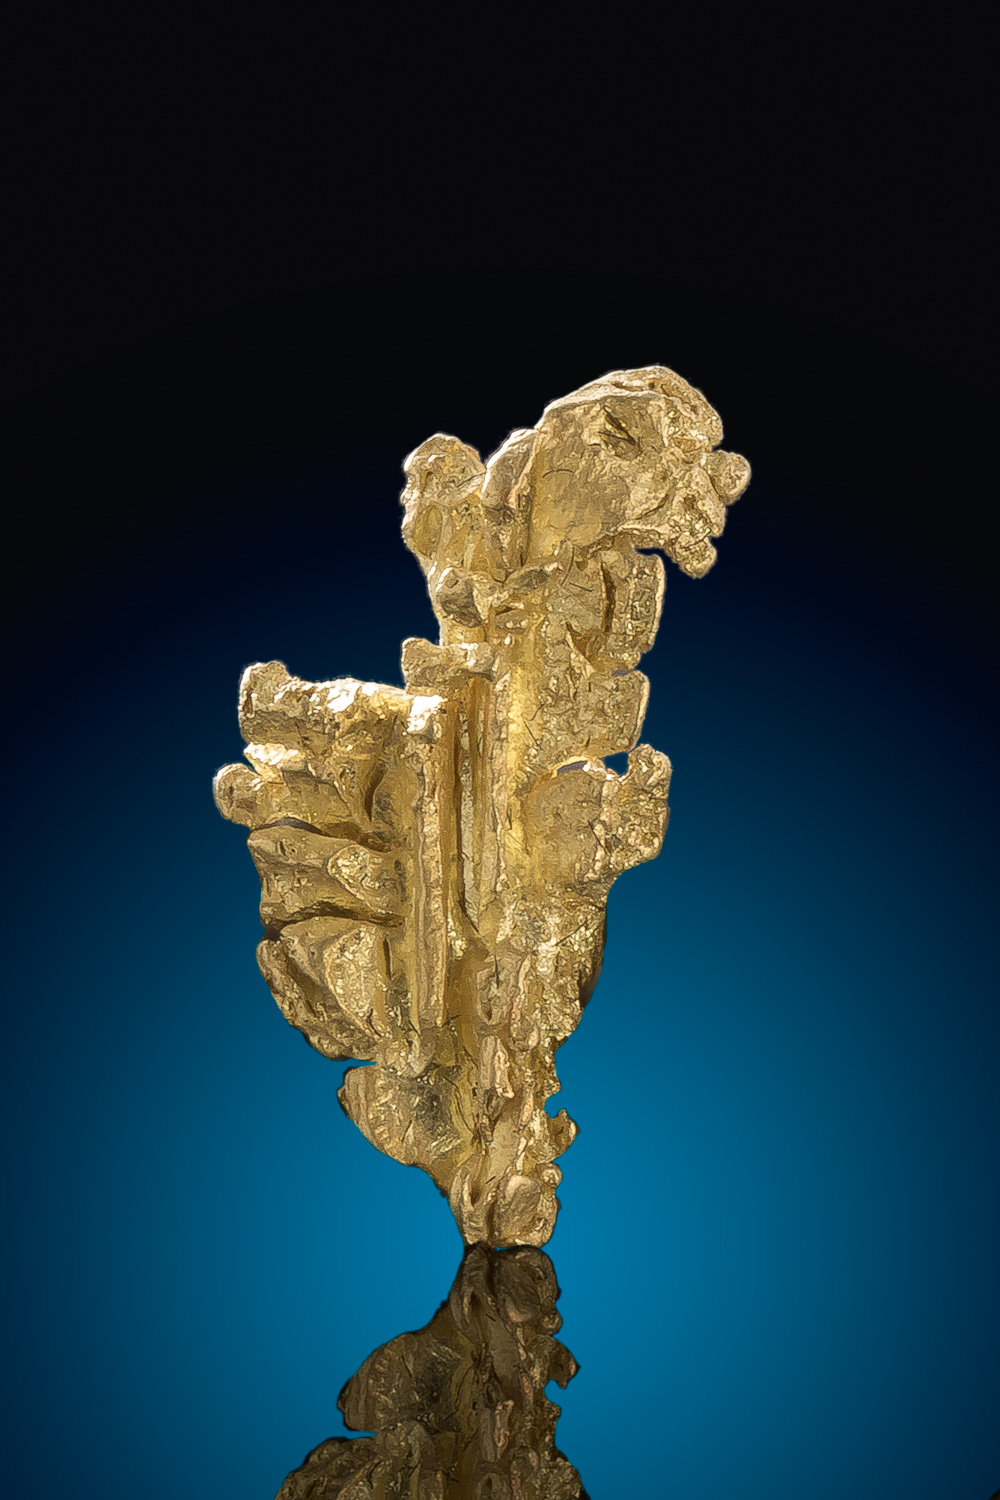 Native Mt Kare, Papua New Guinea - Natural Gold Crystal Specimen